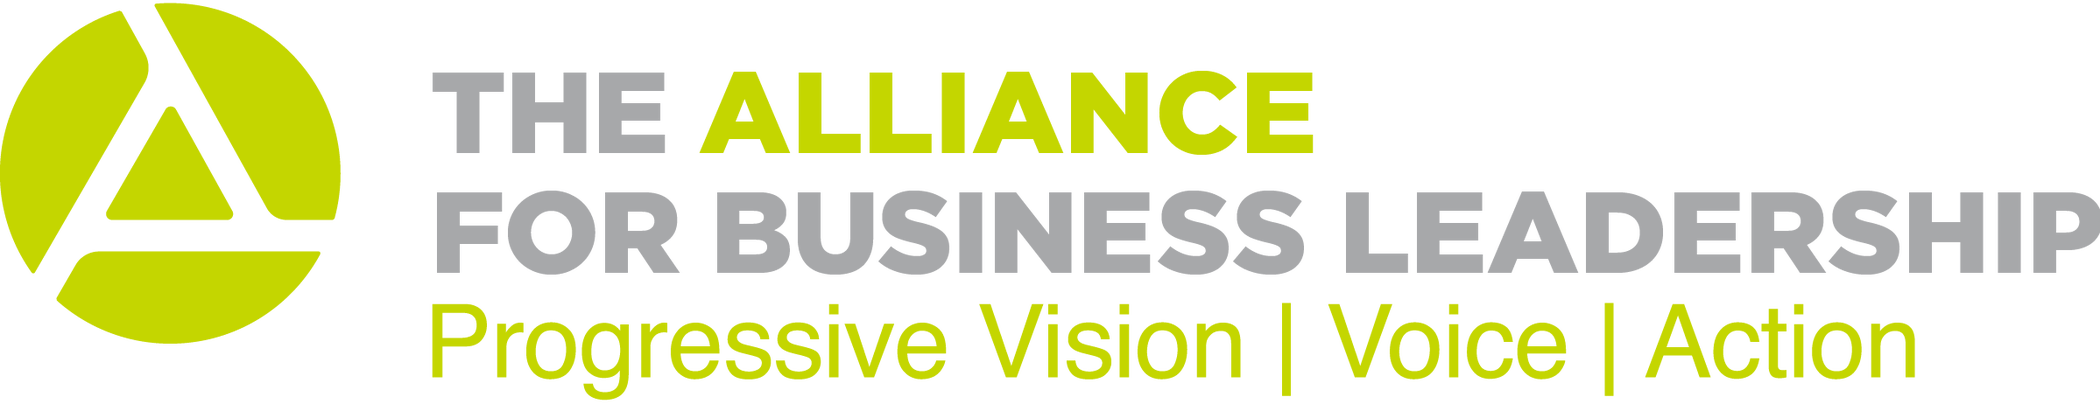 Alliance for Business Leadership.png